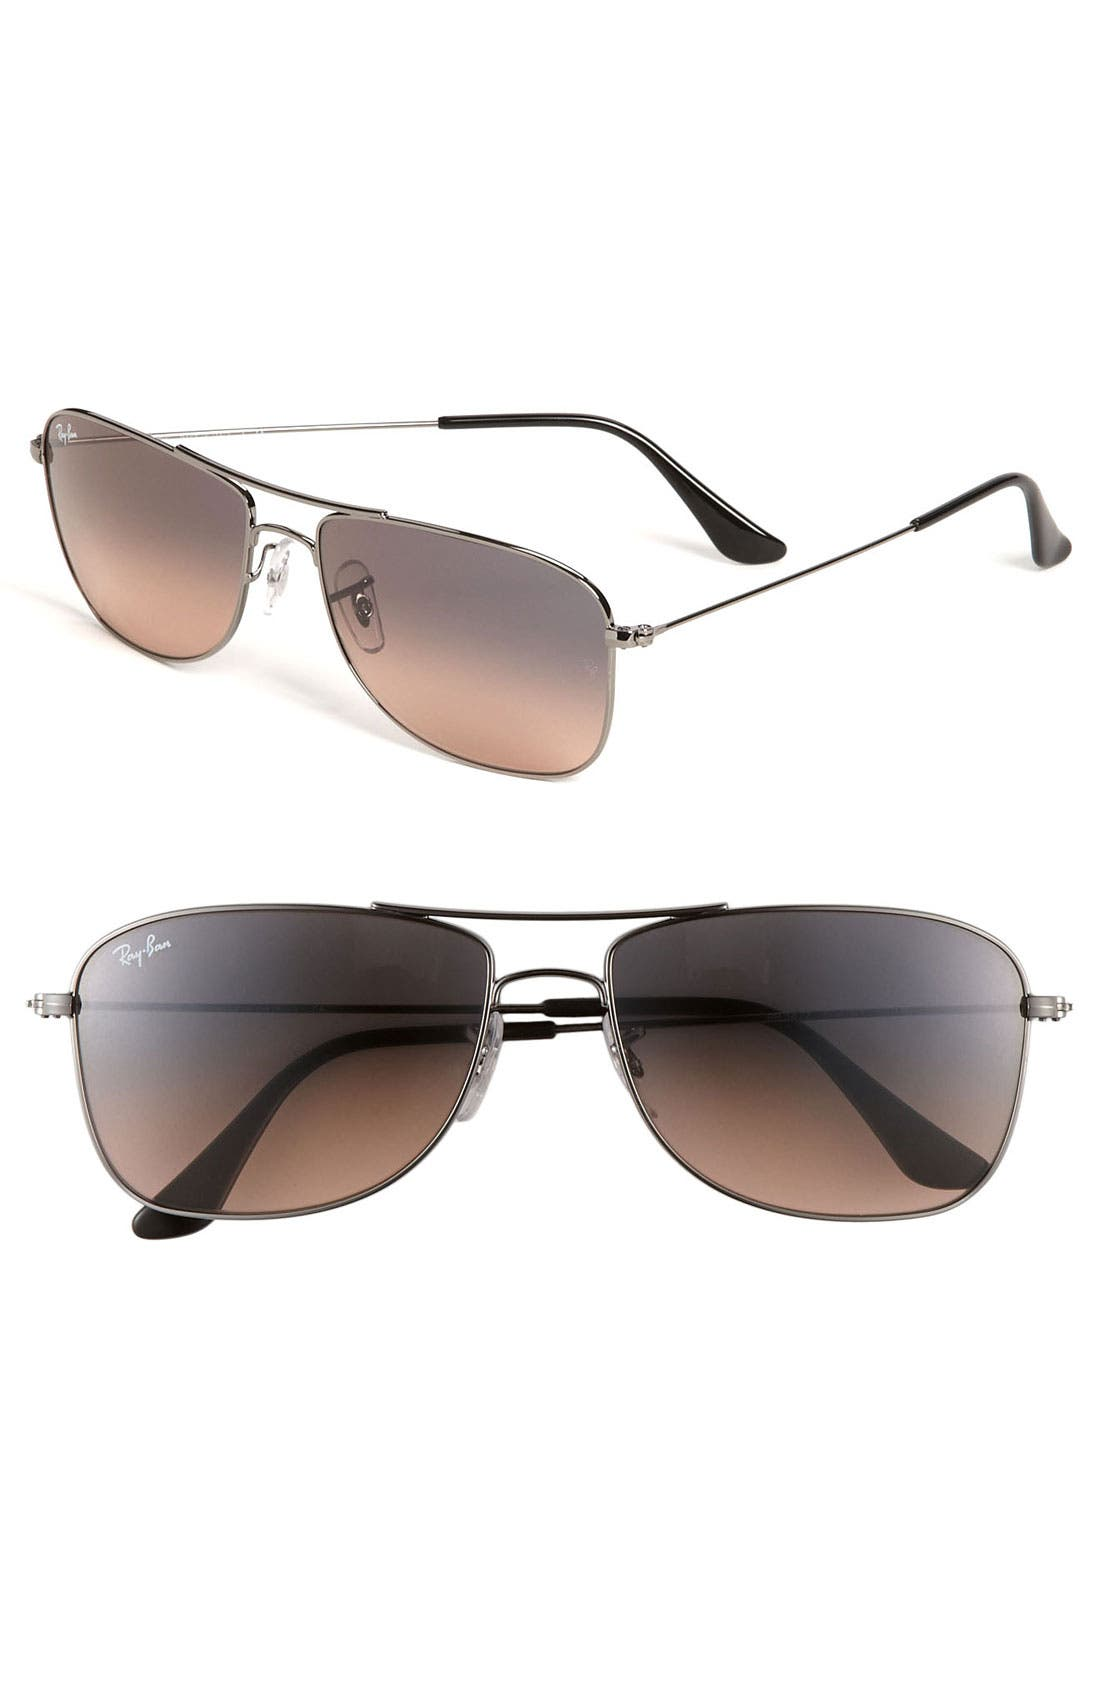 Alternate Image 1 Selected - Ray-Ban 'M Mod Caravan' 59mm Aviator Sunglasses